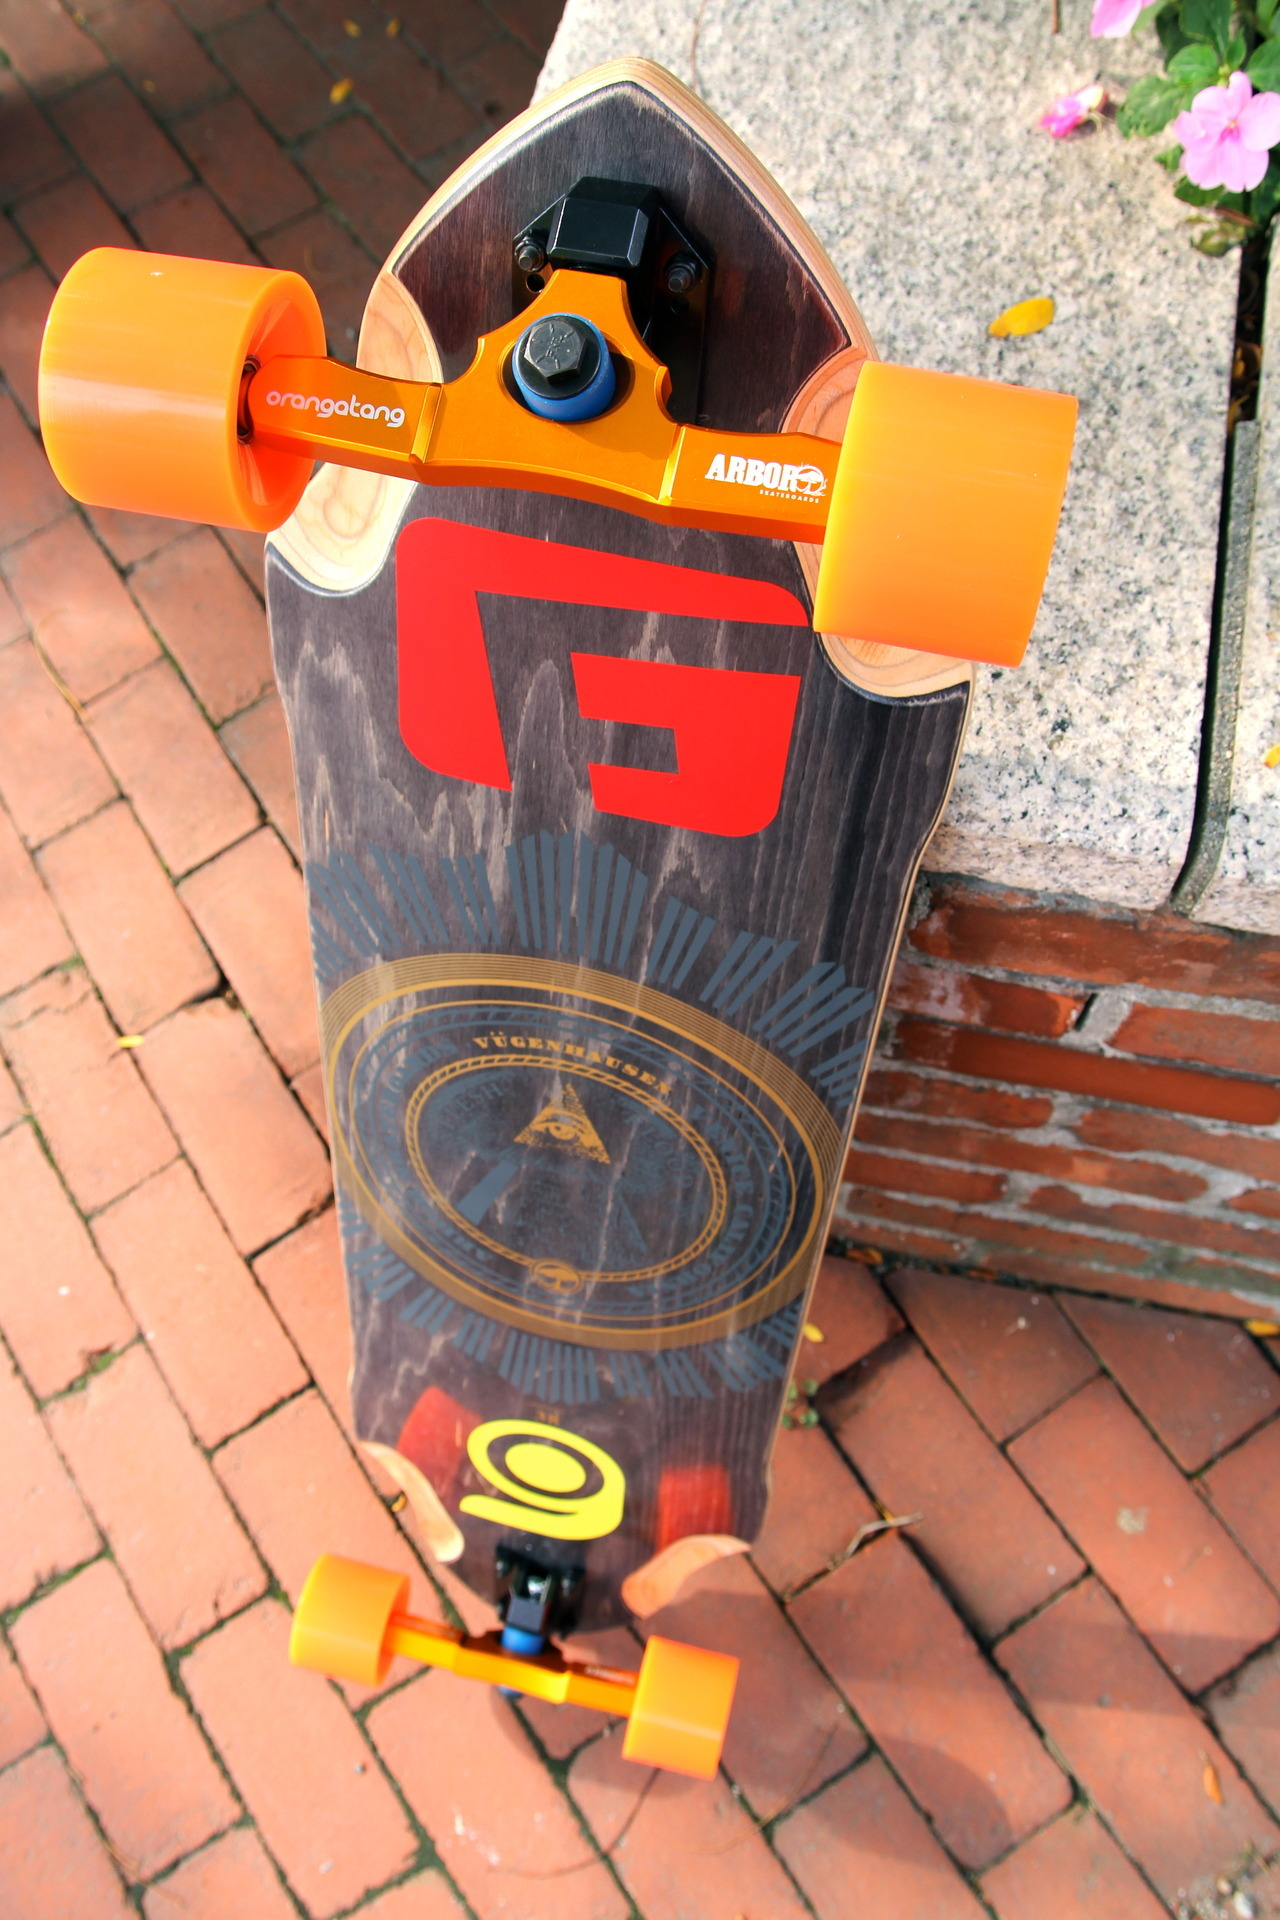 "Vugenhausen 38"" on custom engraved Surf-Rodz RKPs and 80a 4prez wheels. This beauty finds a new home today at 1pm!"